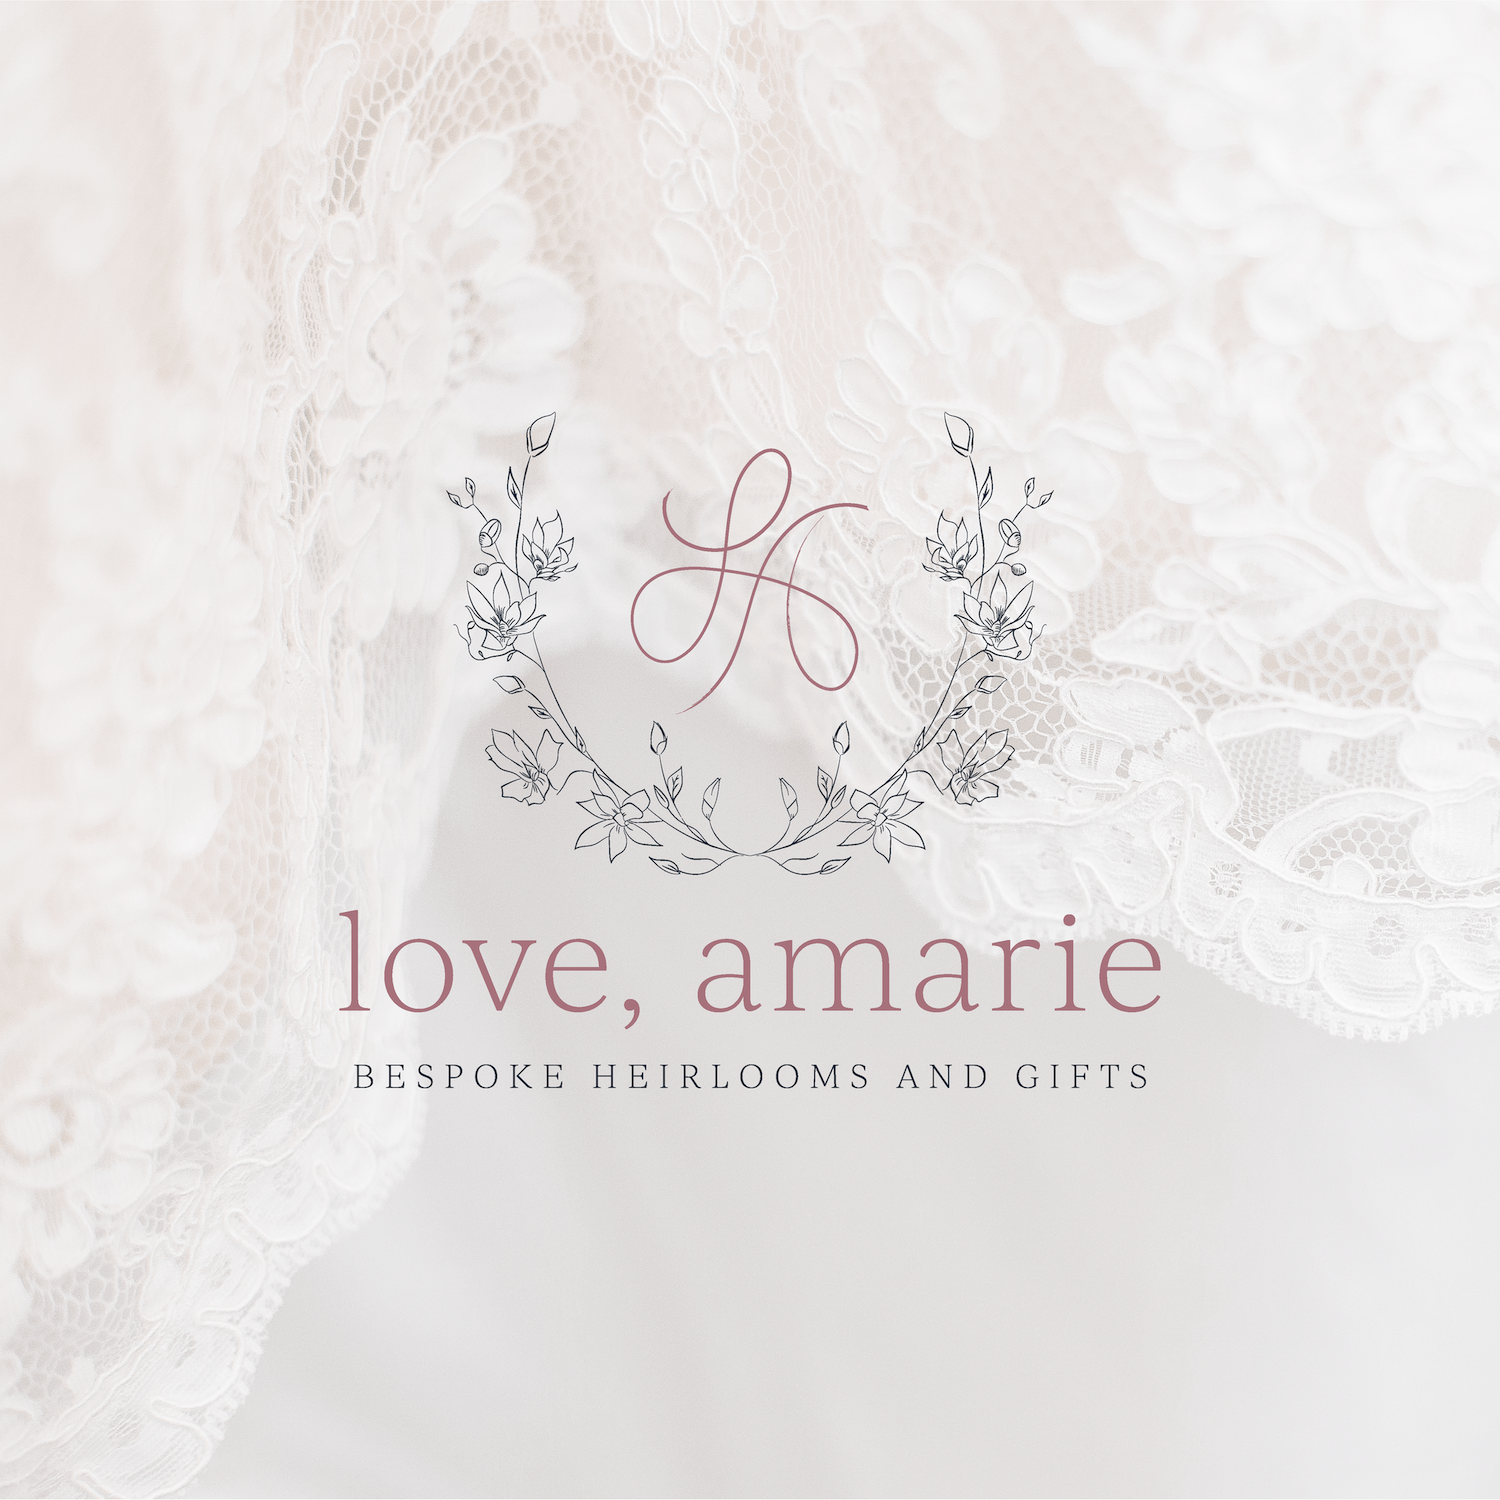 Love, Amarie Custom Handmade Wedding Clutches Brand and Logo Design by Kindly by Kelsea